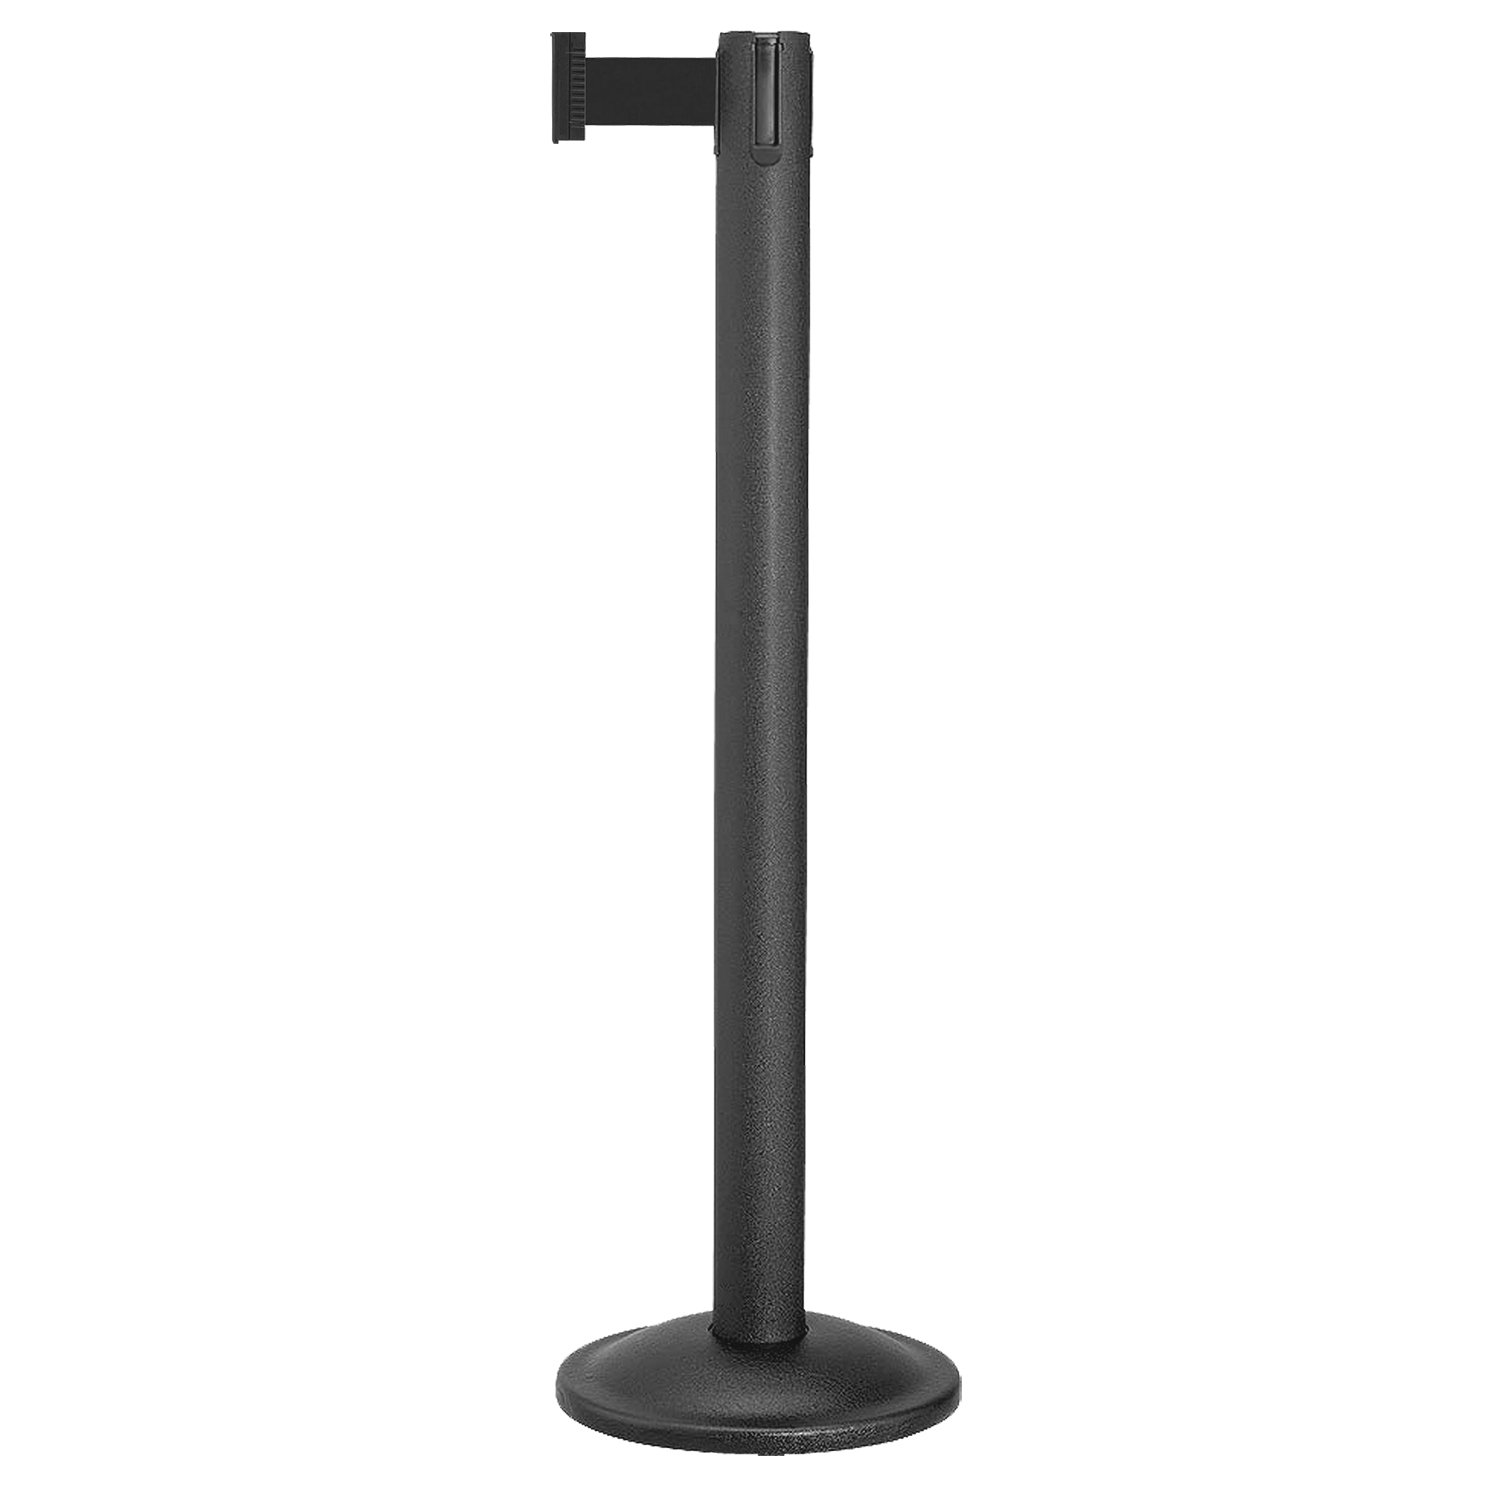 Beltrac Retractable Belt Stanchion for queue lines, Wrinkle Black Post with 7 foot Black Belt.